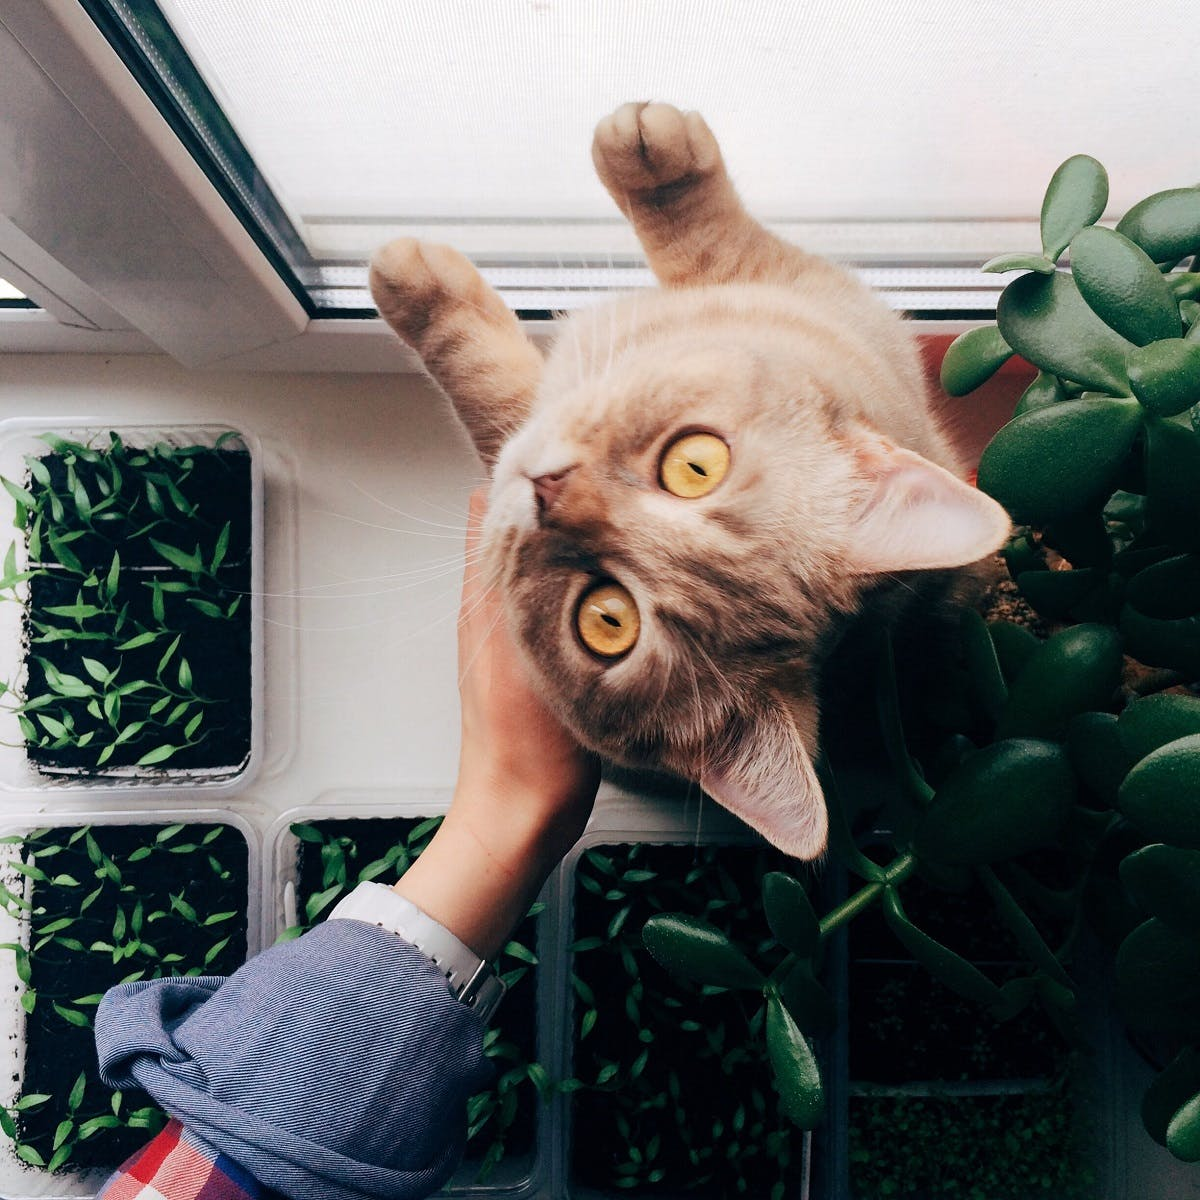 A tan cat with yellow eyes surrounded by indoor plants